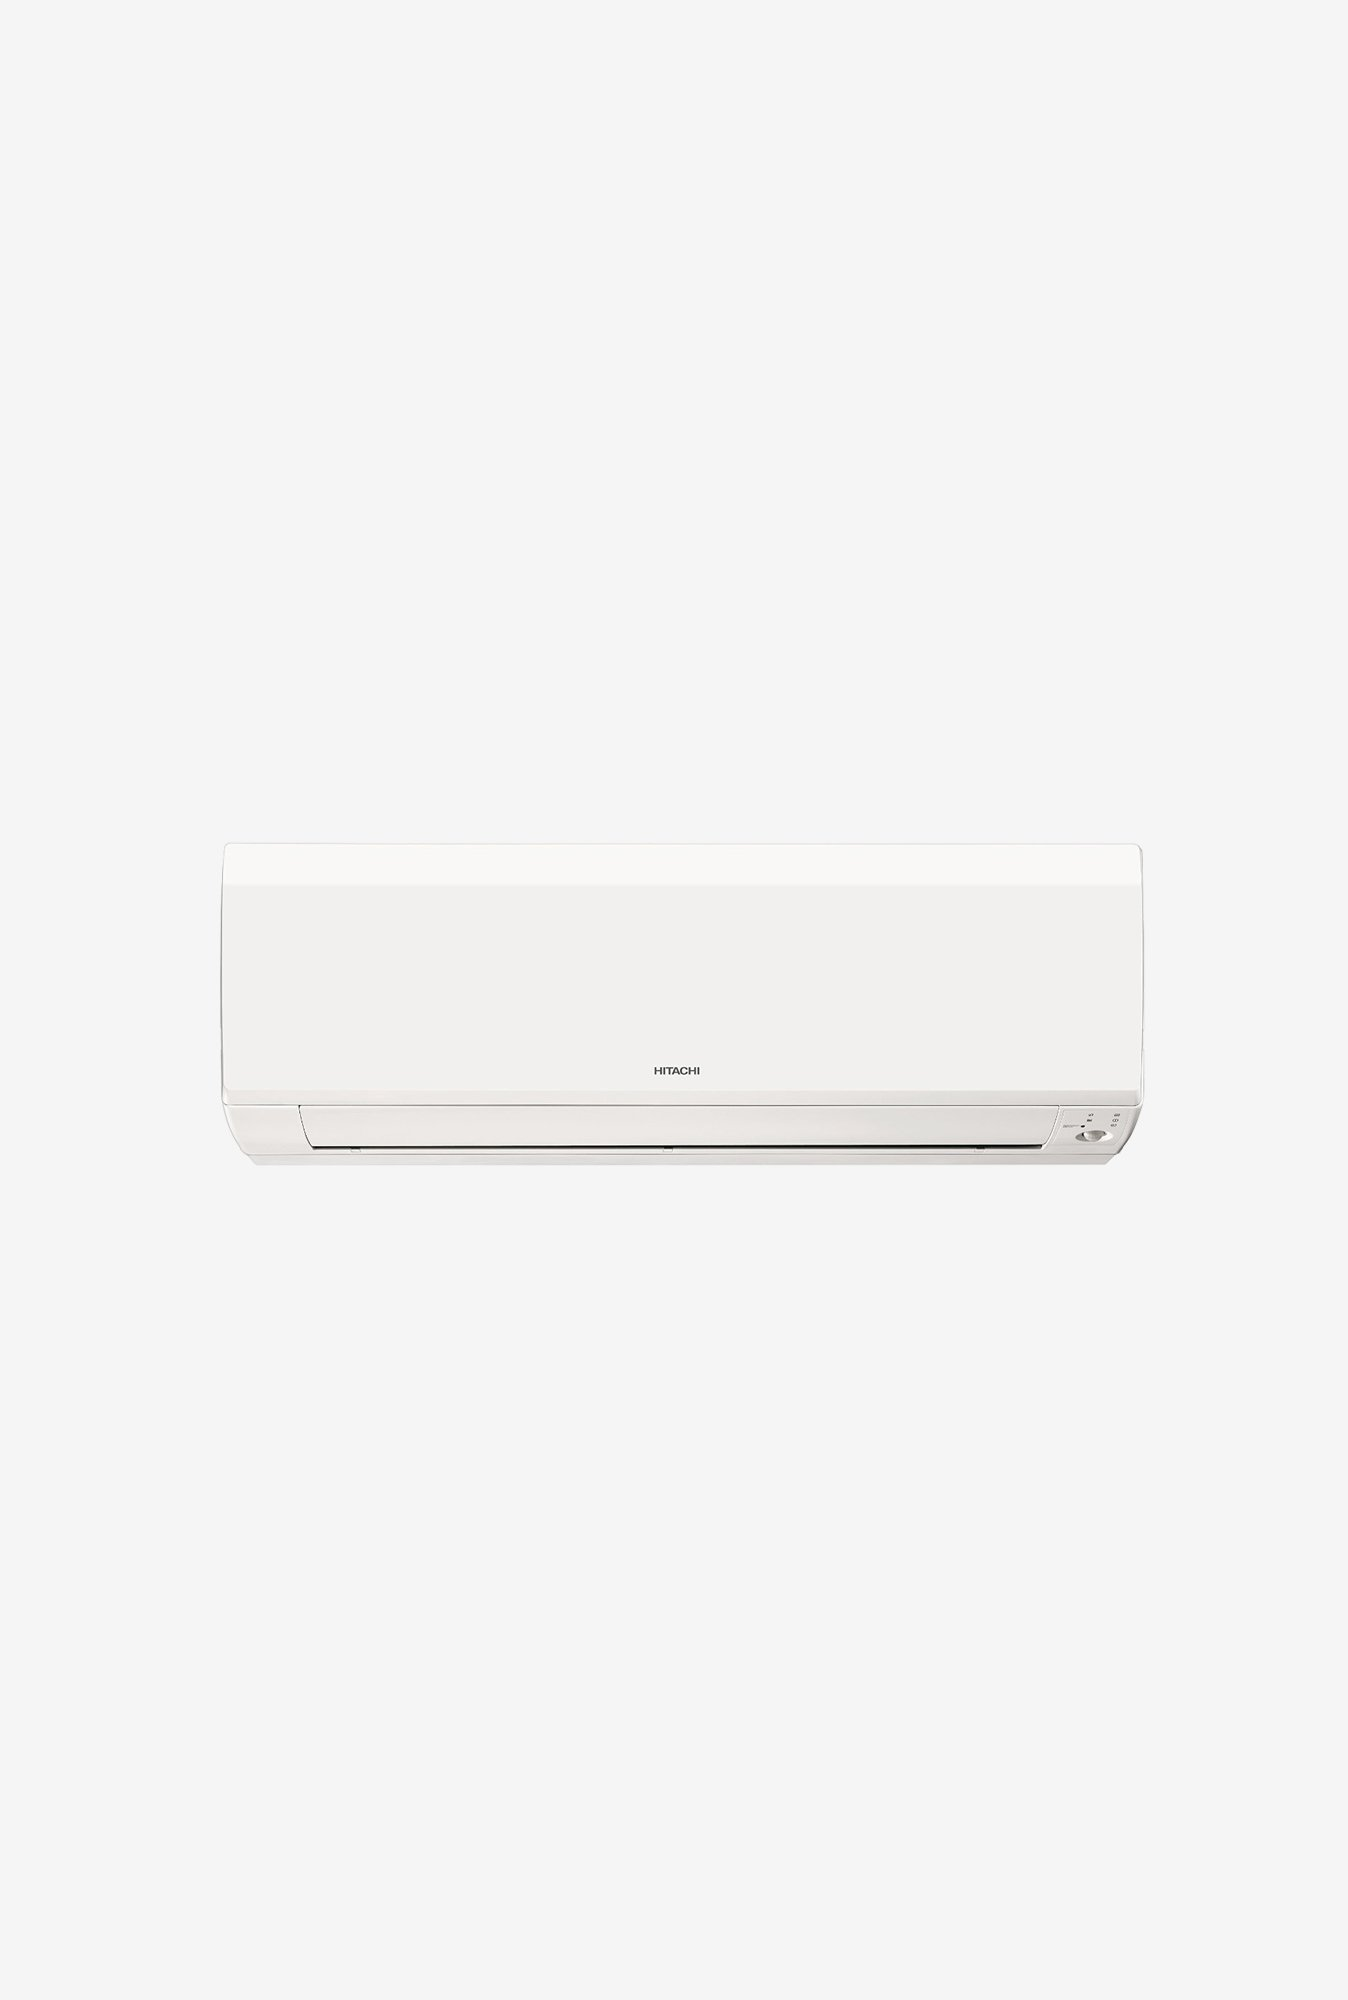 Hitachi Zunoh 5200f RAU520AVD 1.7 Ton 5 Star Split AC Copper